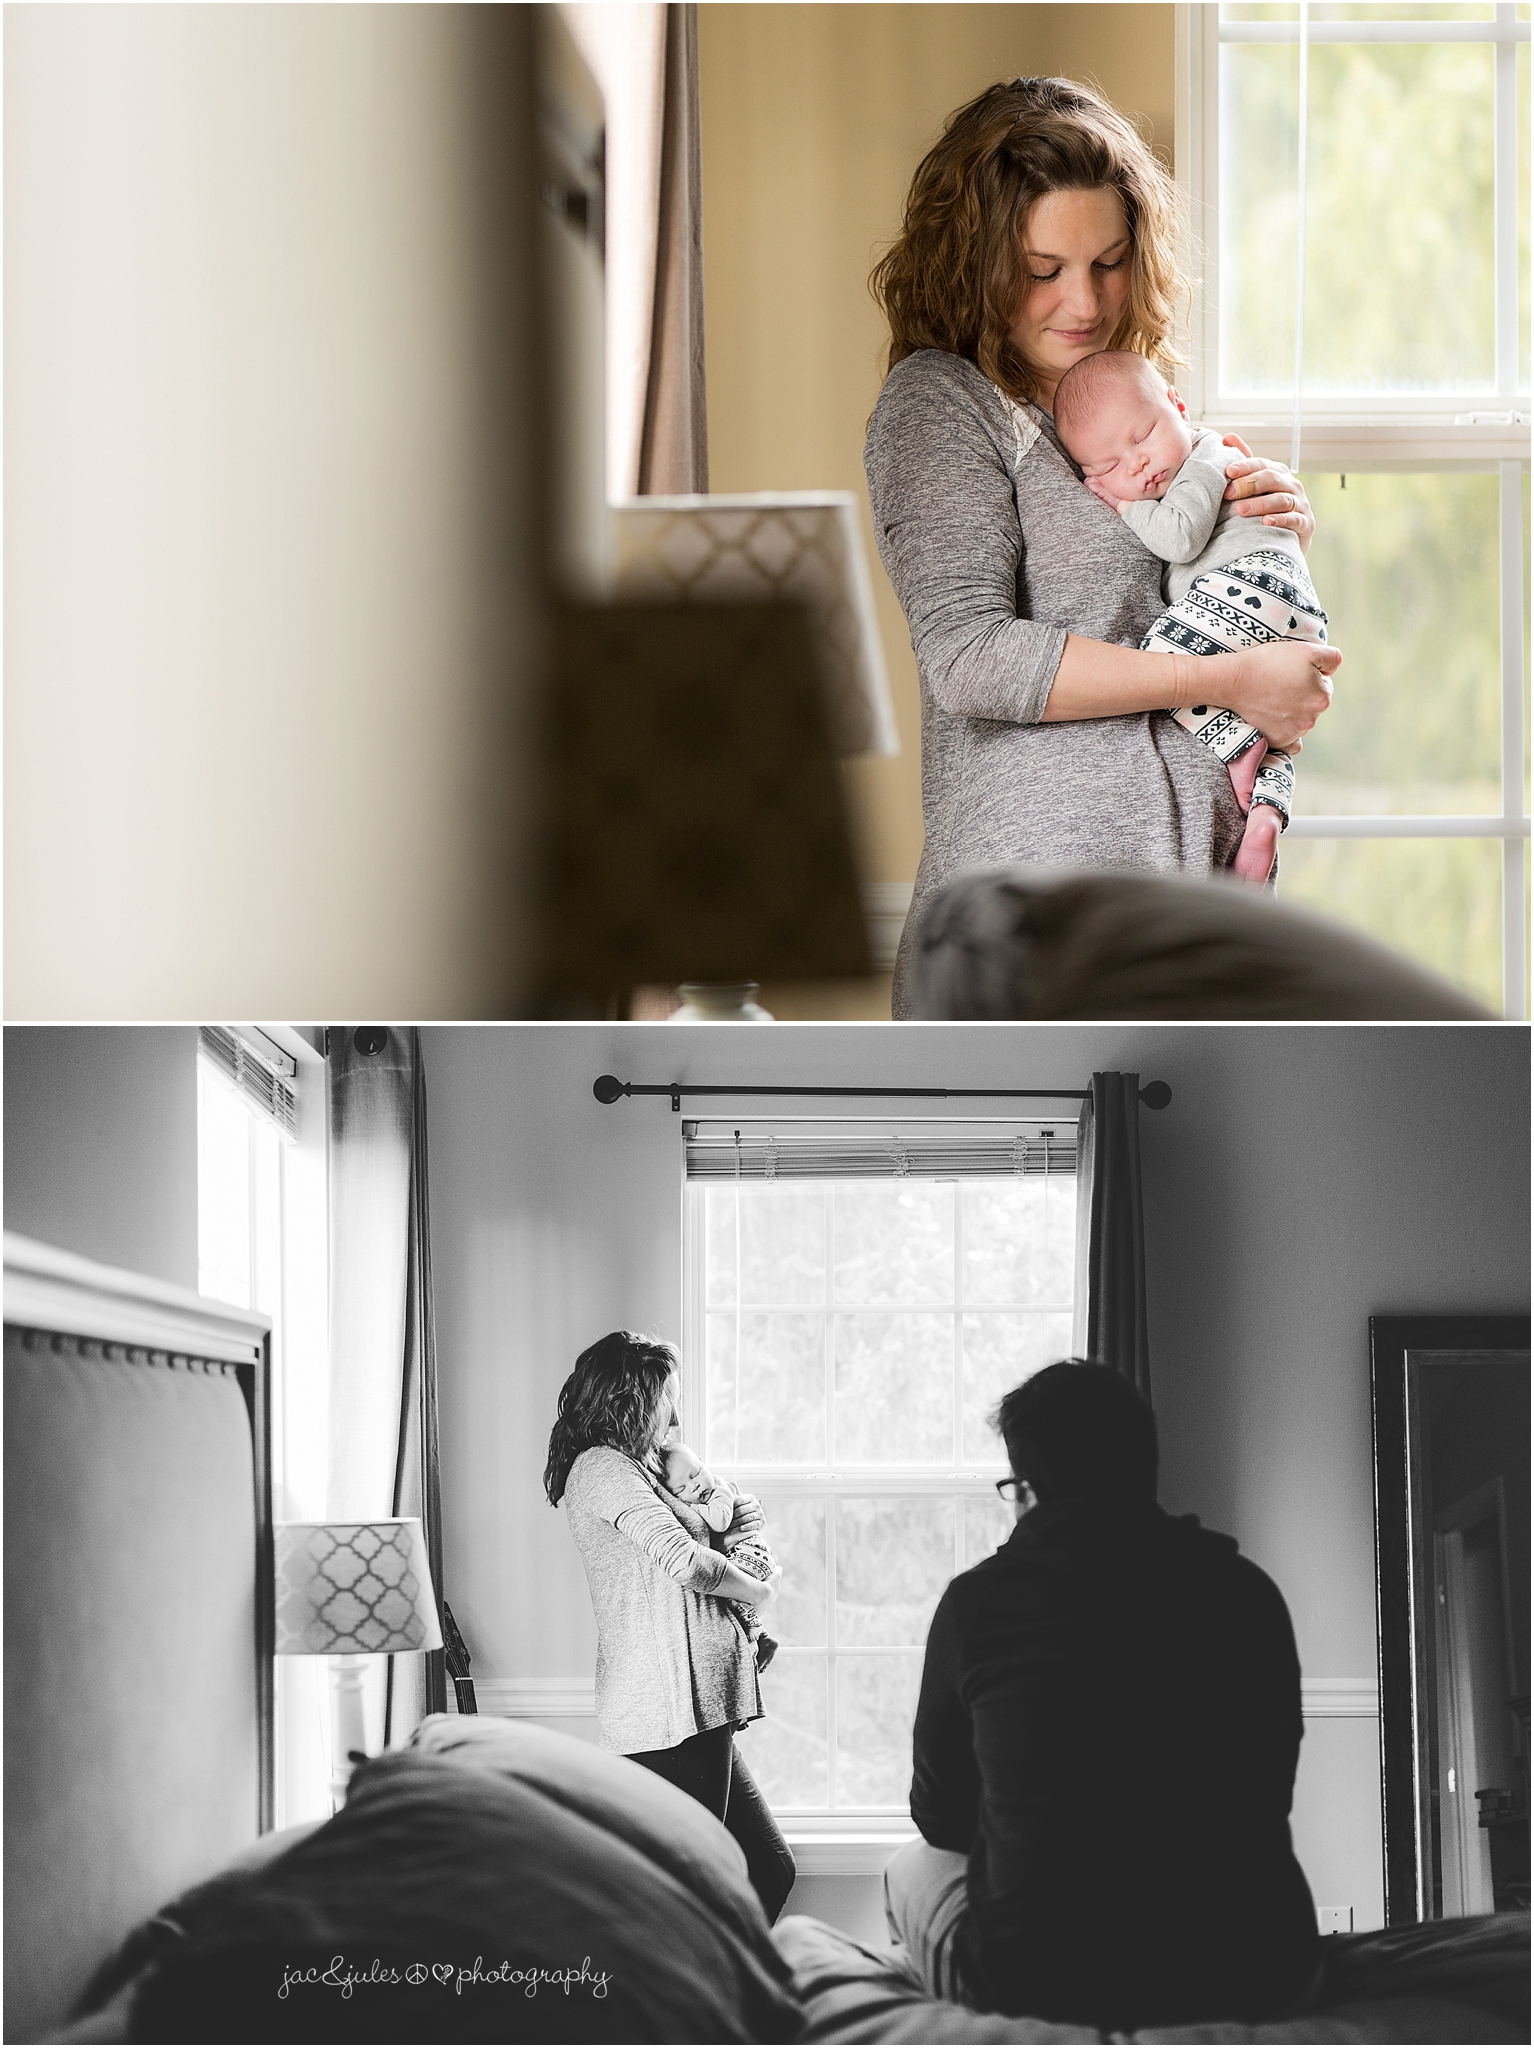 jacnjules photographs a newborn and her parents in their home in toms river, nj